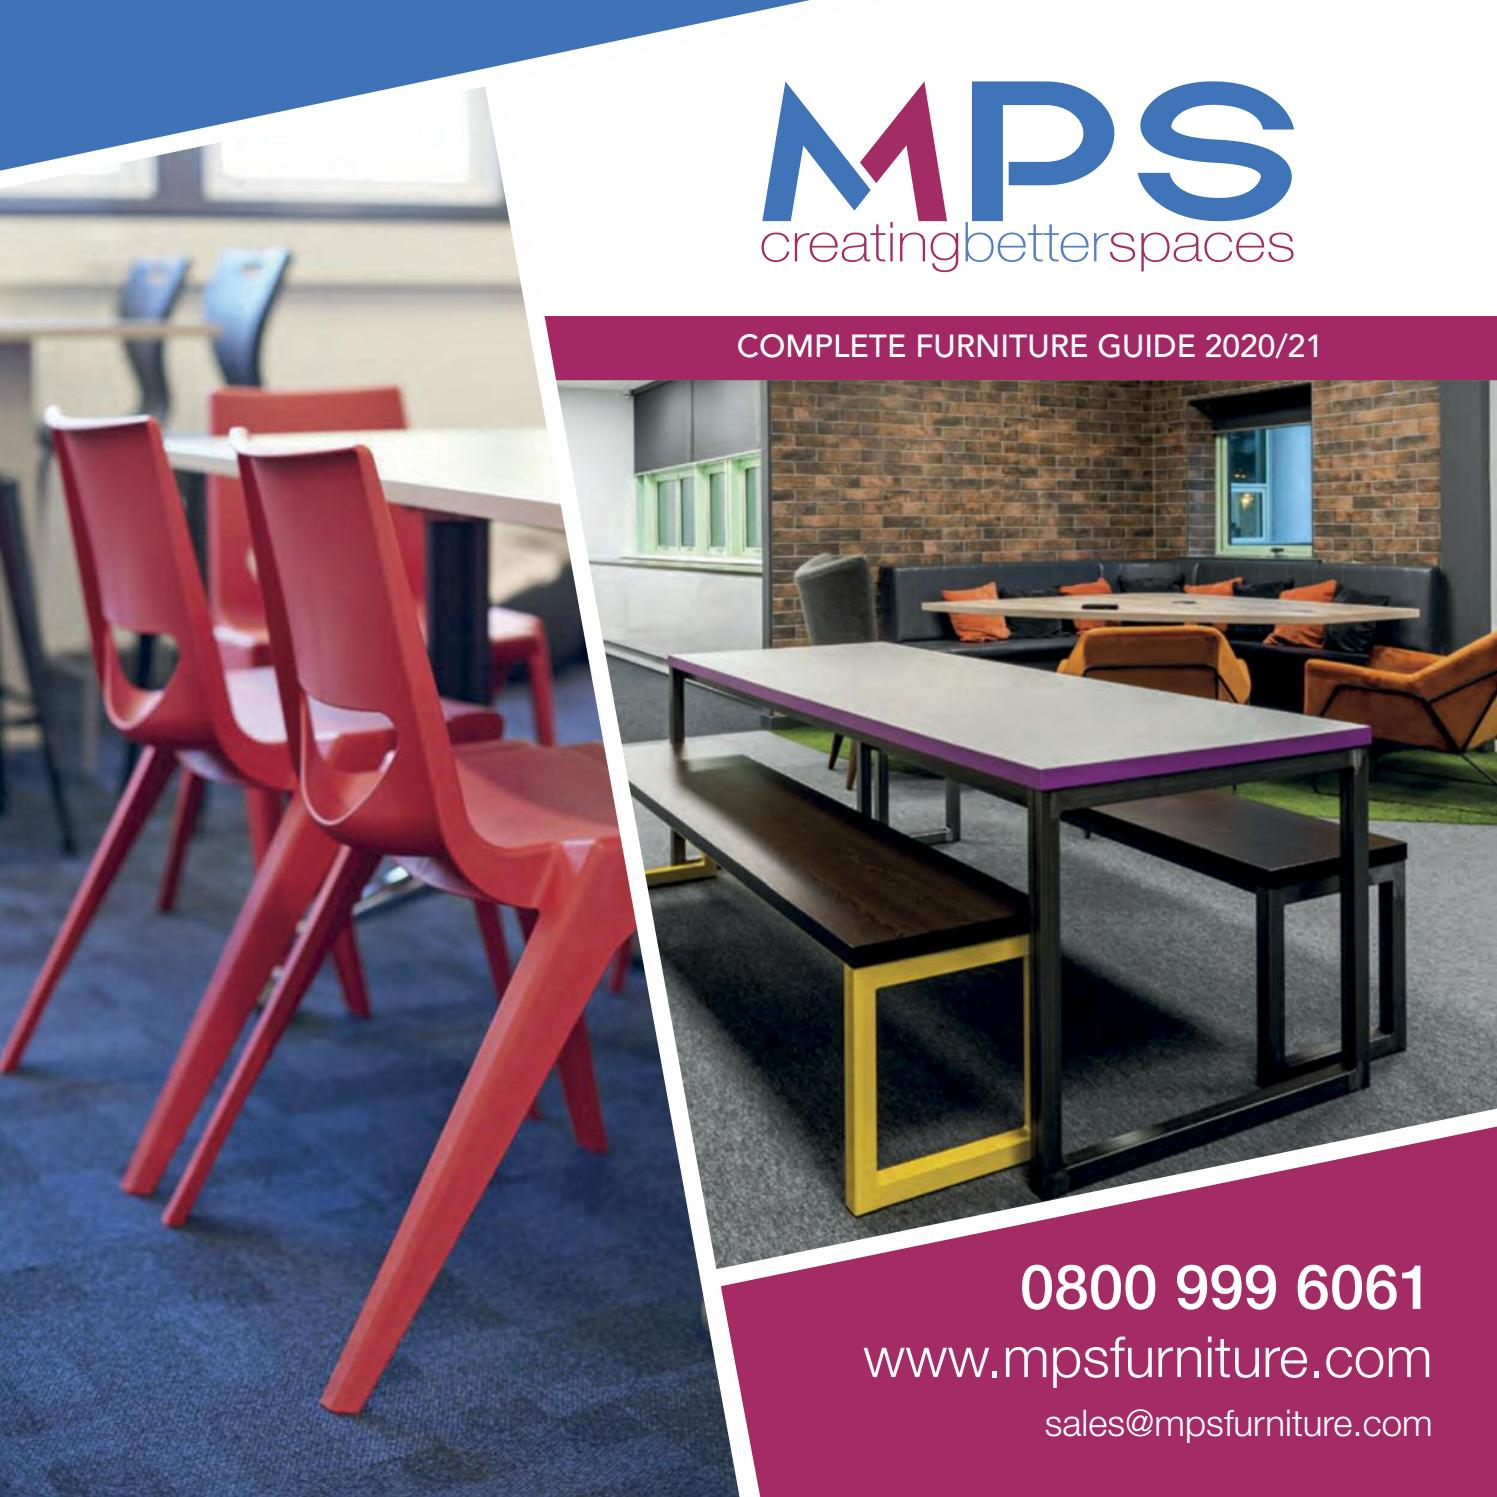 Mps Furniture Brochure 2020 By Mps Furniture Issuu